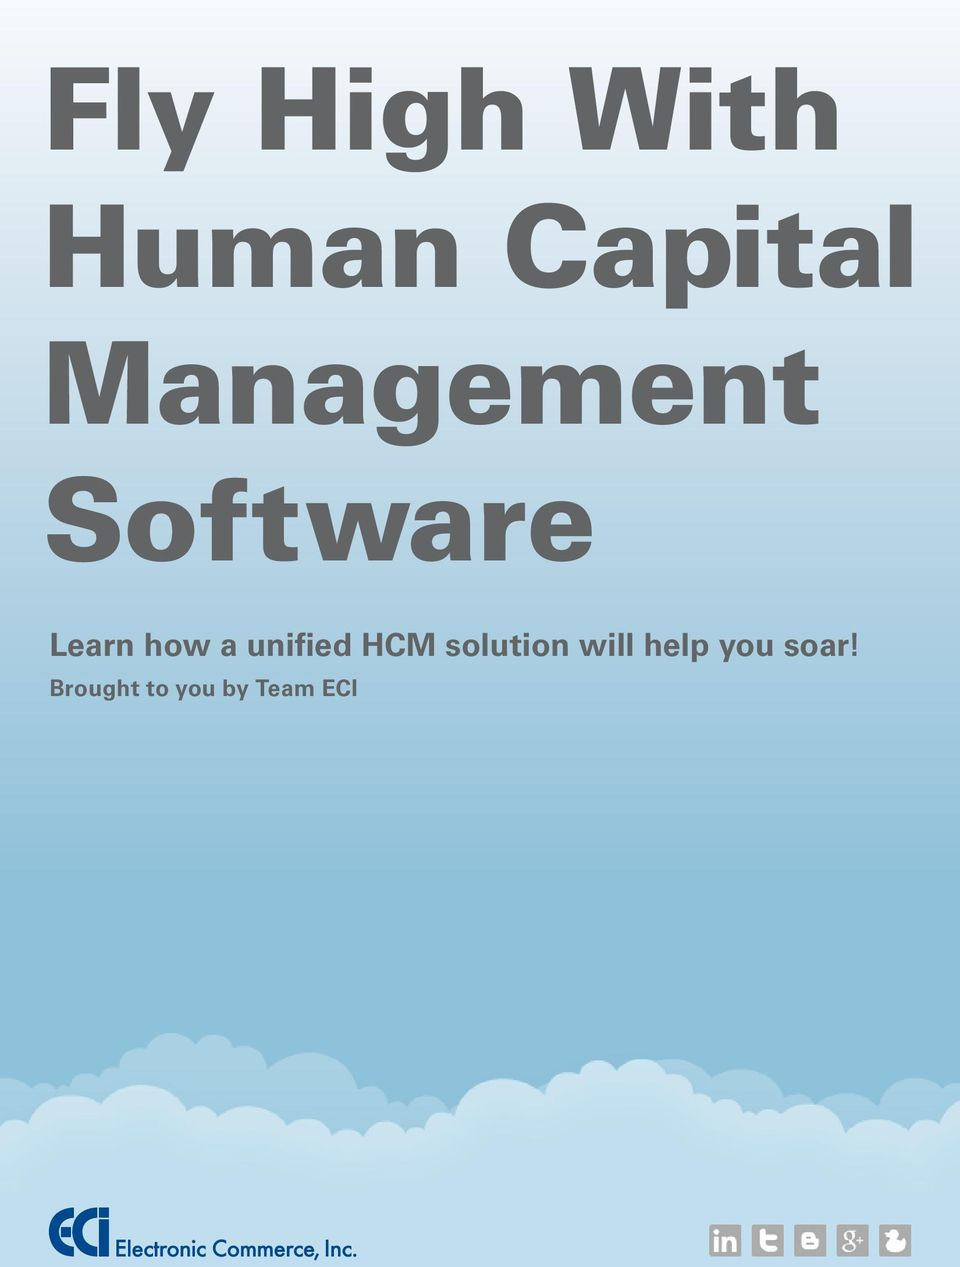 unified HCM solution will help